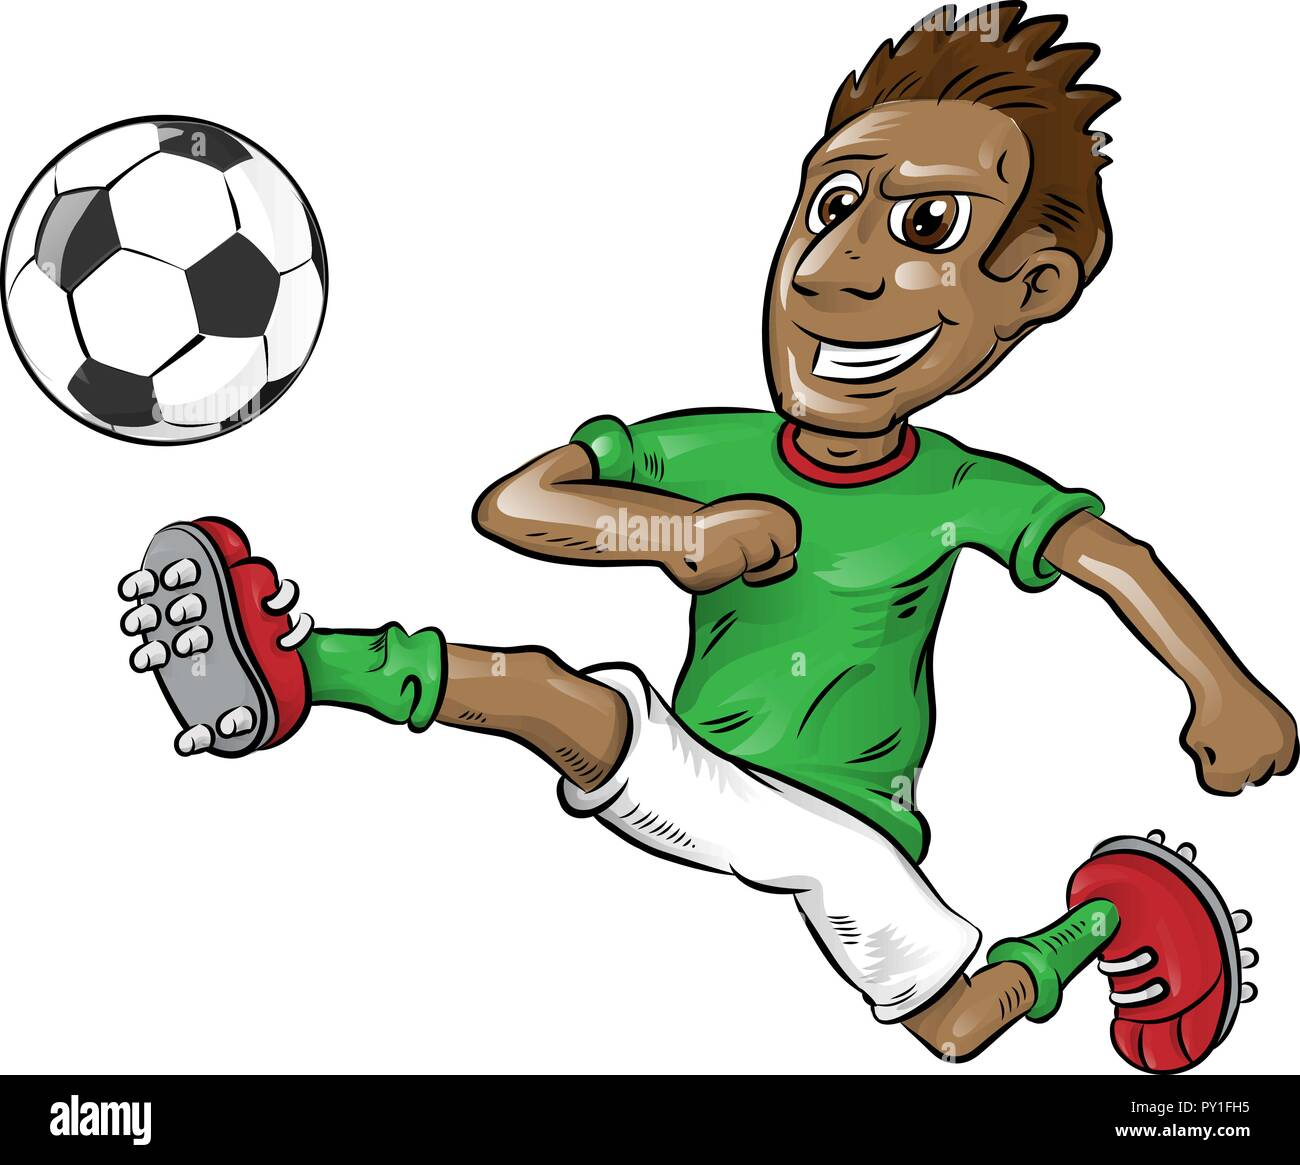 fun nigerian soccer player cartoon isolated on white - Stock Vector